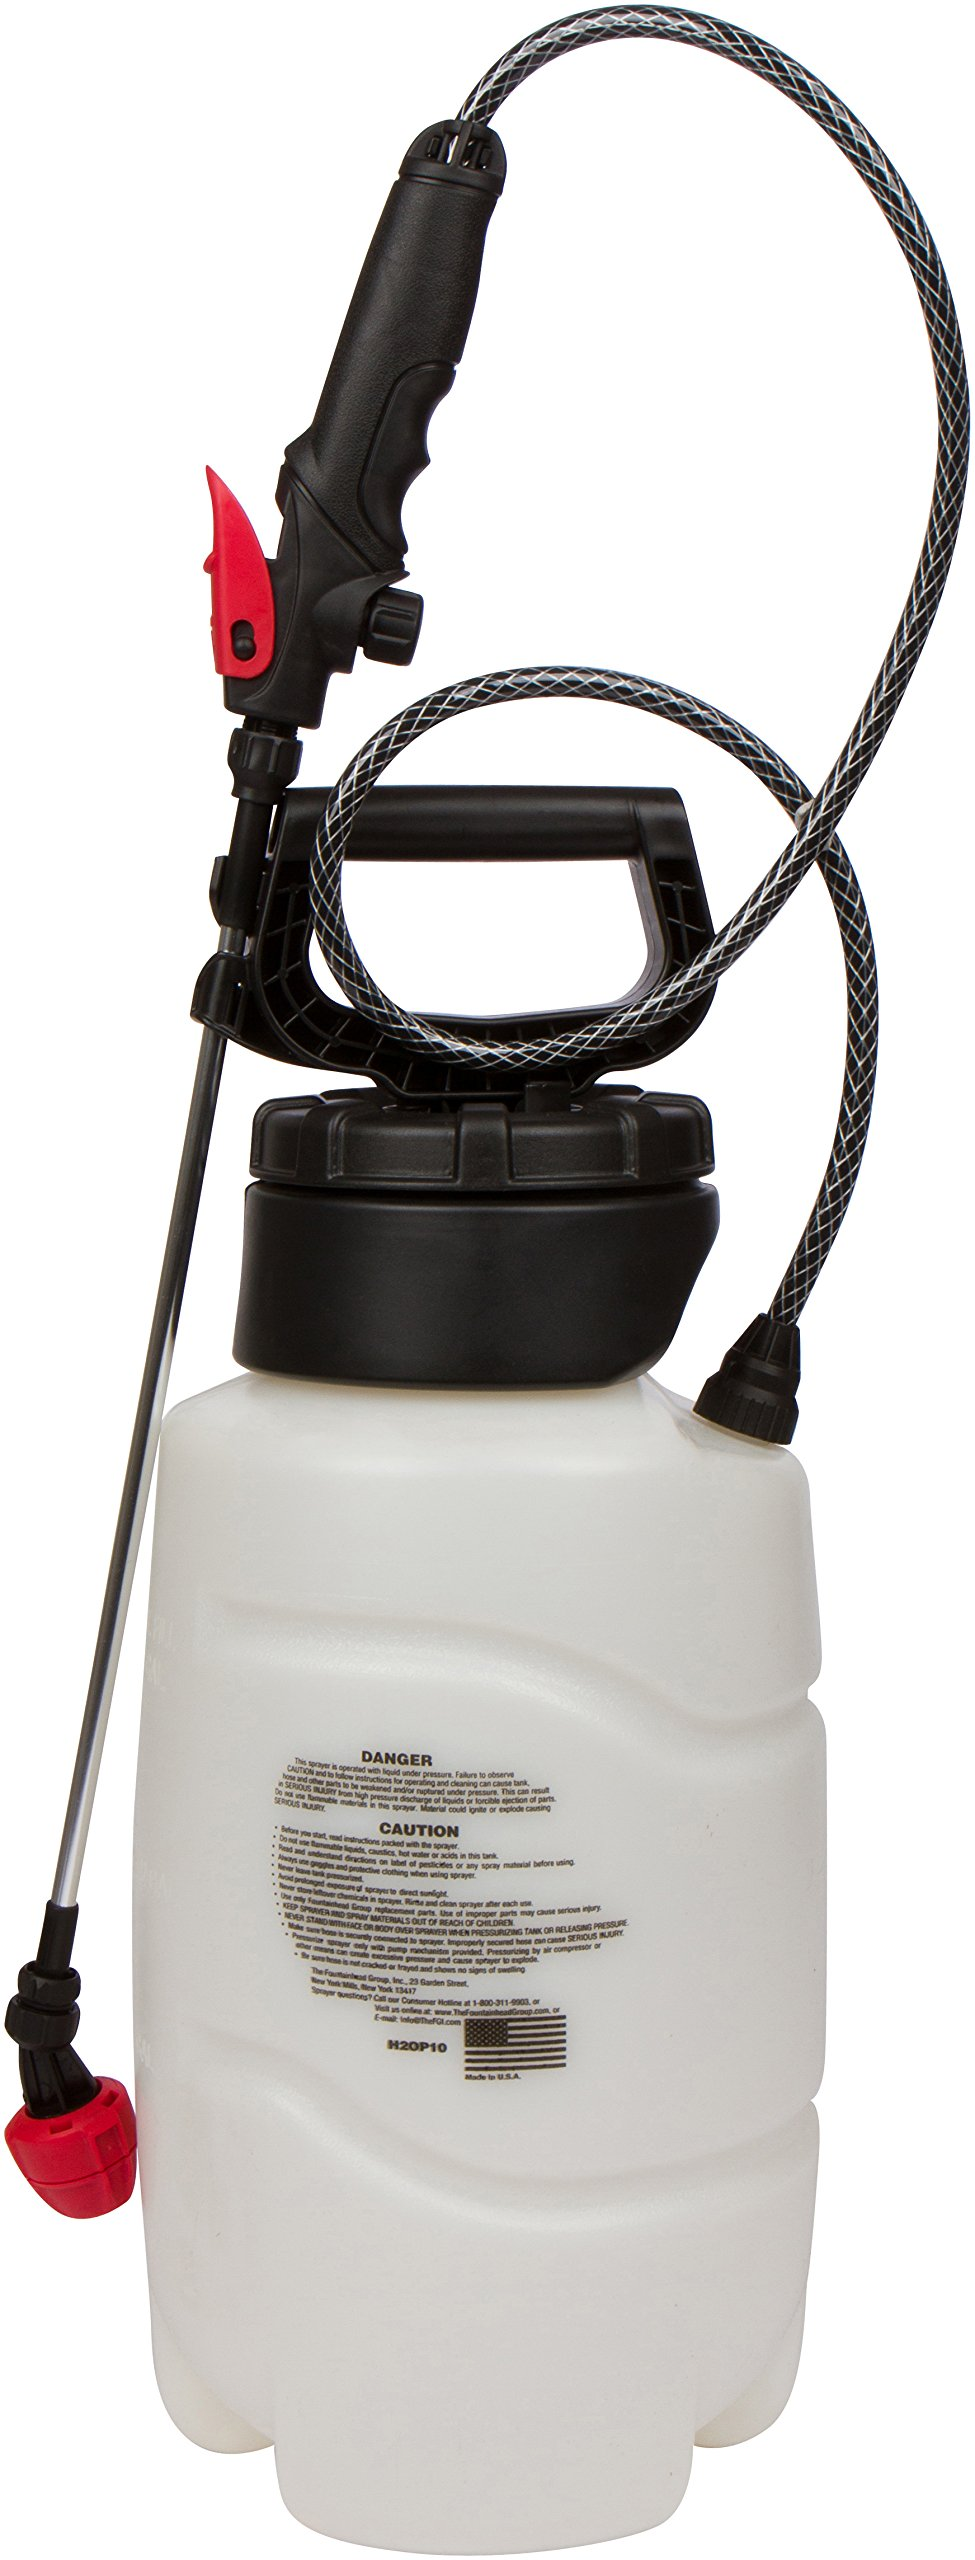 Roundup 190459 Compression Sprayer, 2 Gallon by Roundup (Image #2)